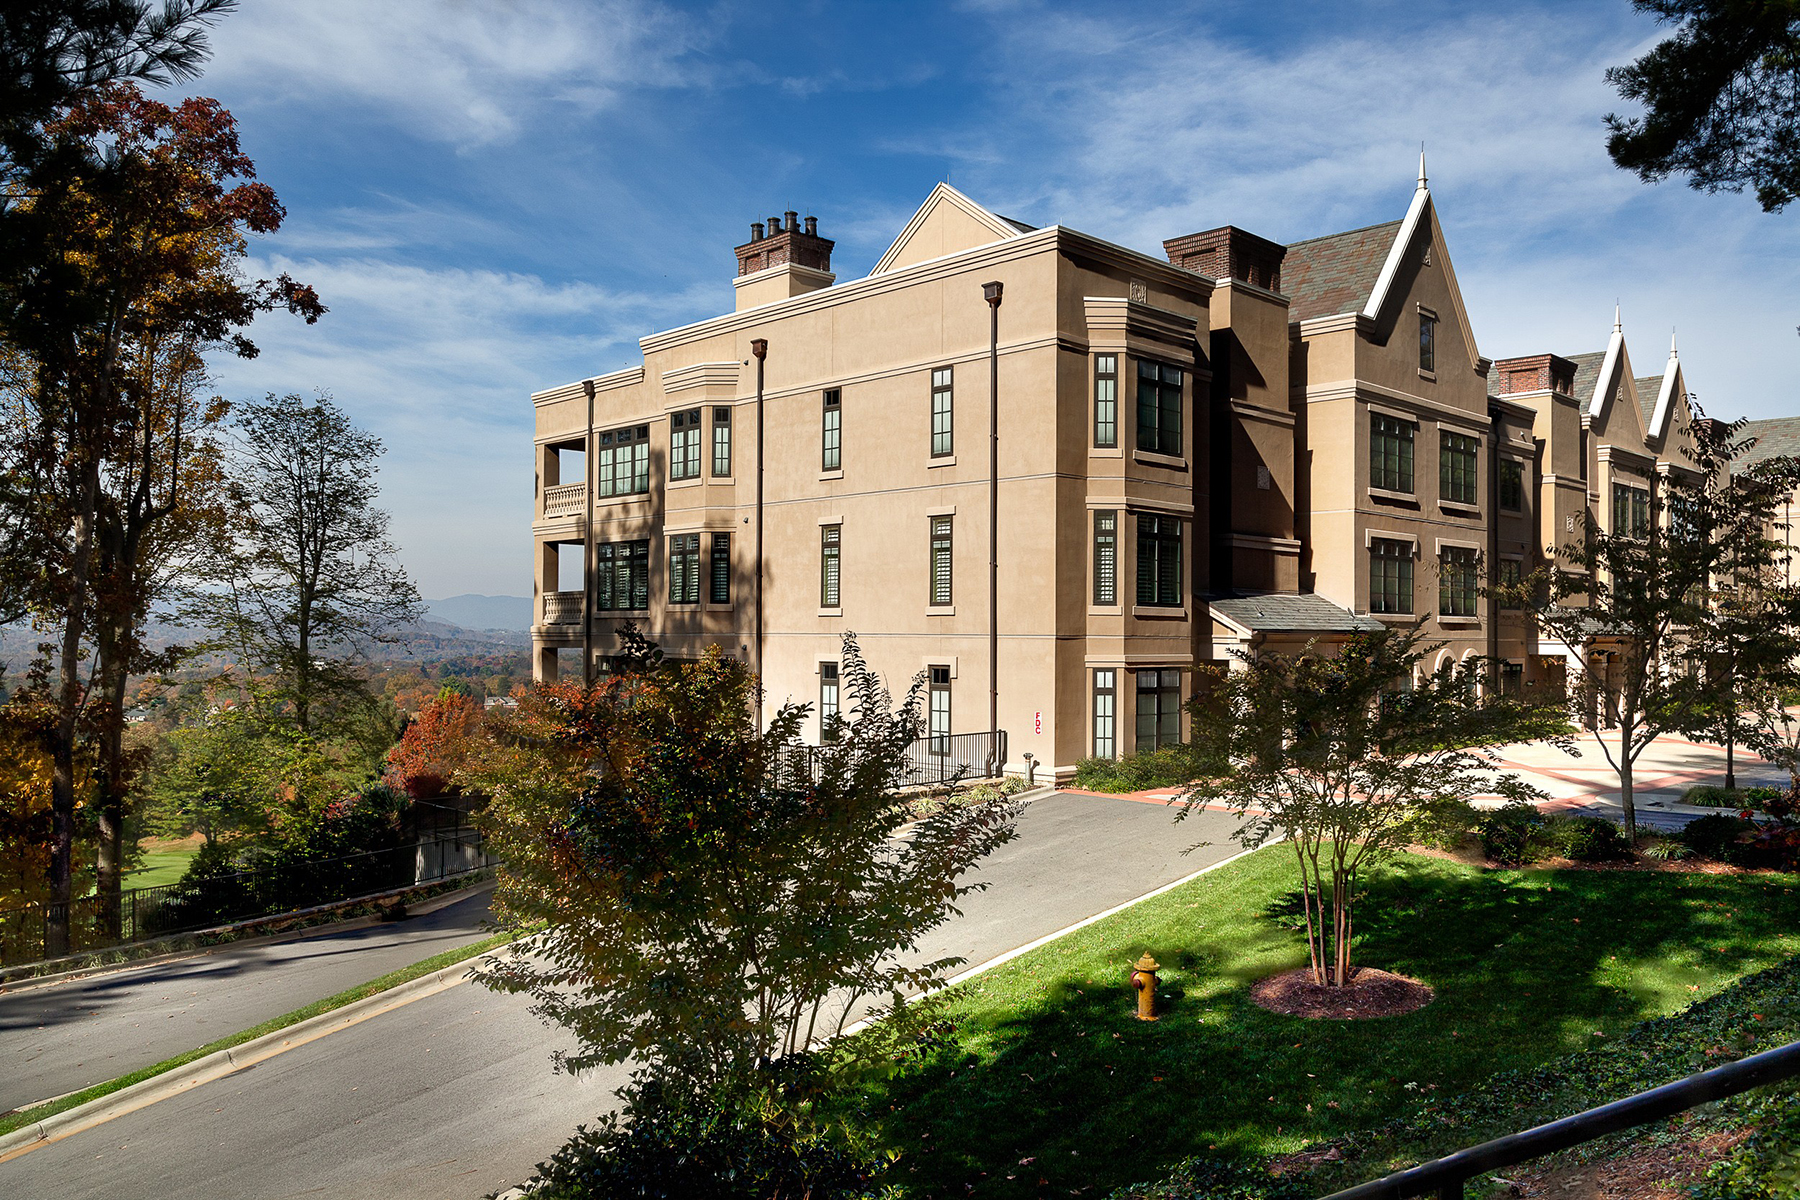 Condominium for Sale at THE FITZGERALD 288 Macon Ave, Asheville, North Carolina 28804 United States